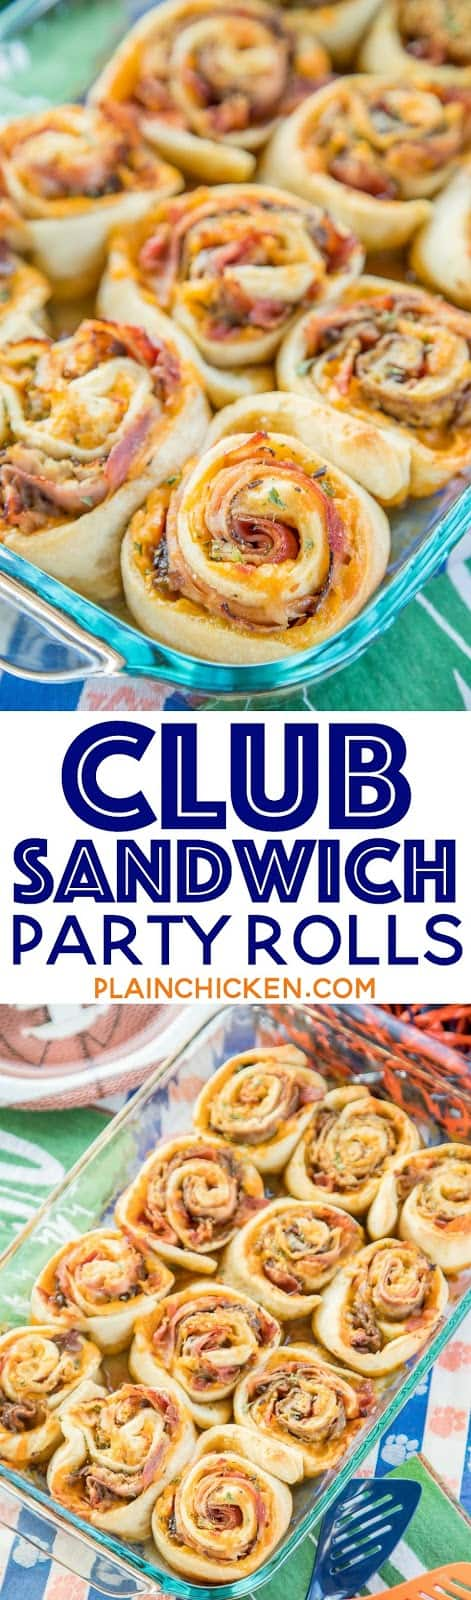 Club Sandwich Party Rolls -  so good! ham, turkey, roast beef, bacon and cheddar are rolled up (cinnamon bun style!) in soft, fluffy pizza dough. Then they're drizzled with a brown sugar dijon glaze and baked until golden, gooey, and crispy. They are seriously so good!! I could eat them everyday!! Great for tailgating, brunch, lunch, dinner and parties! Always the first thing to go!